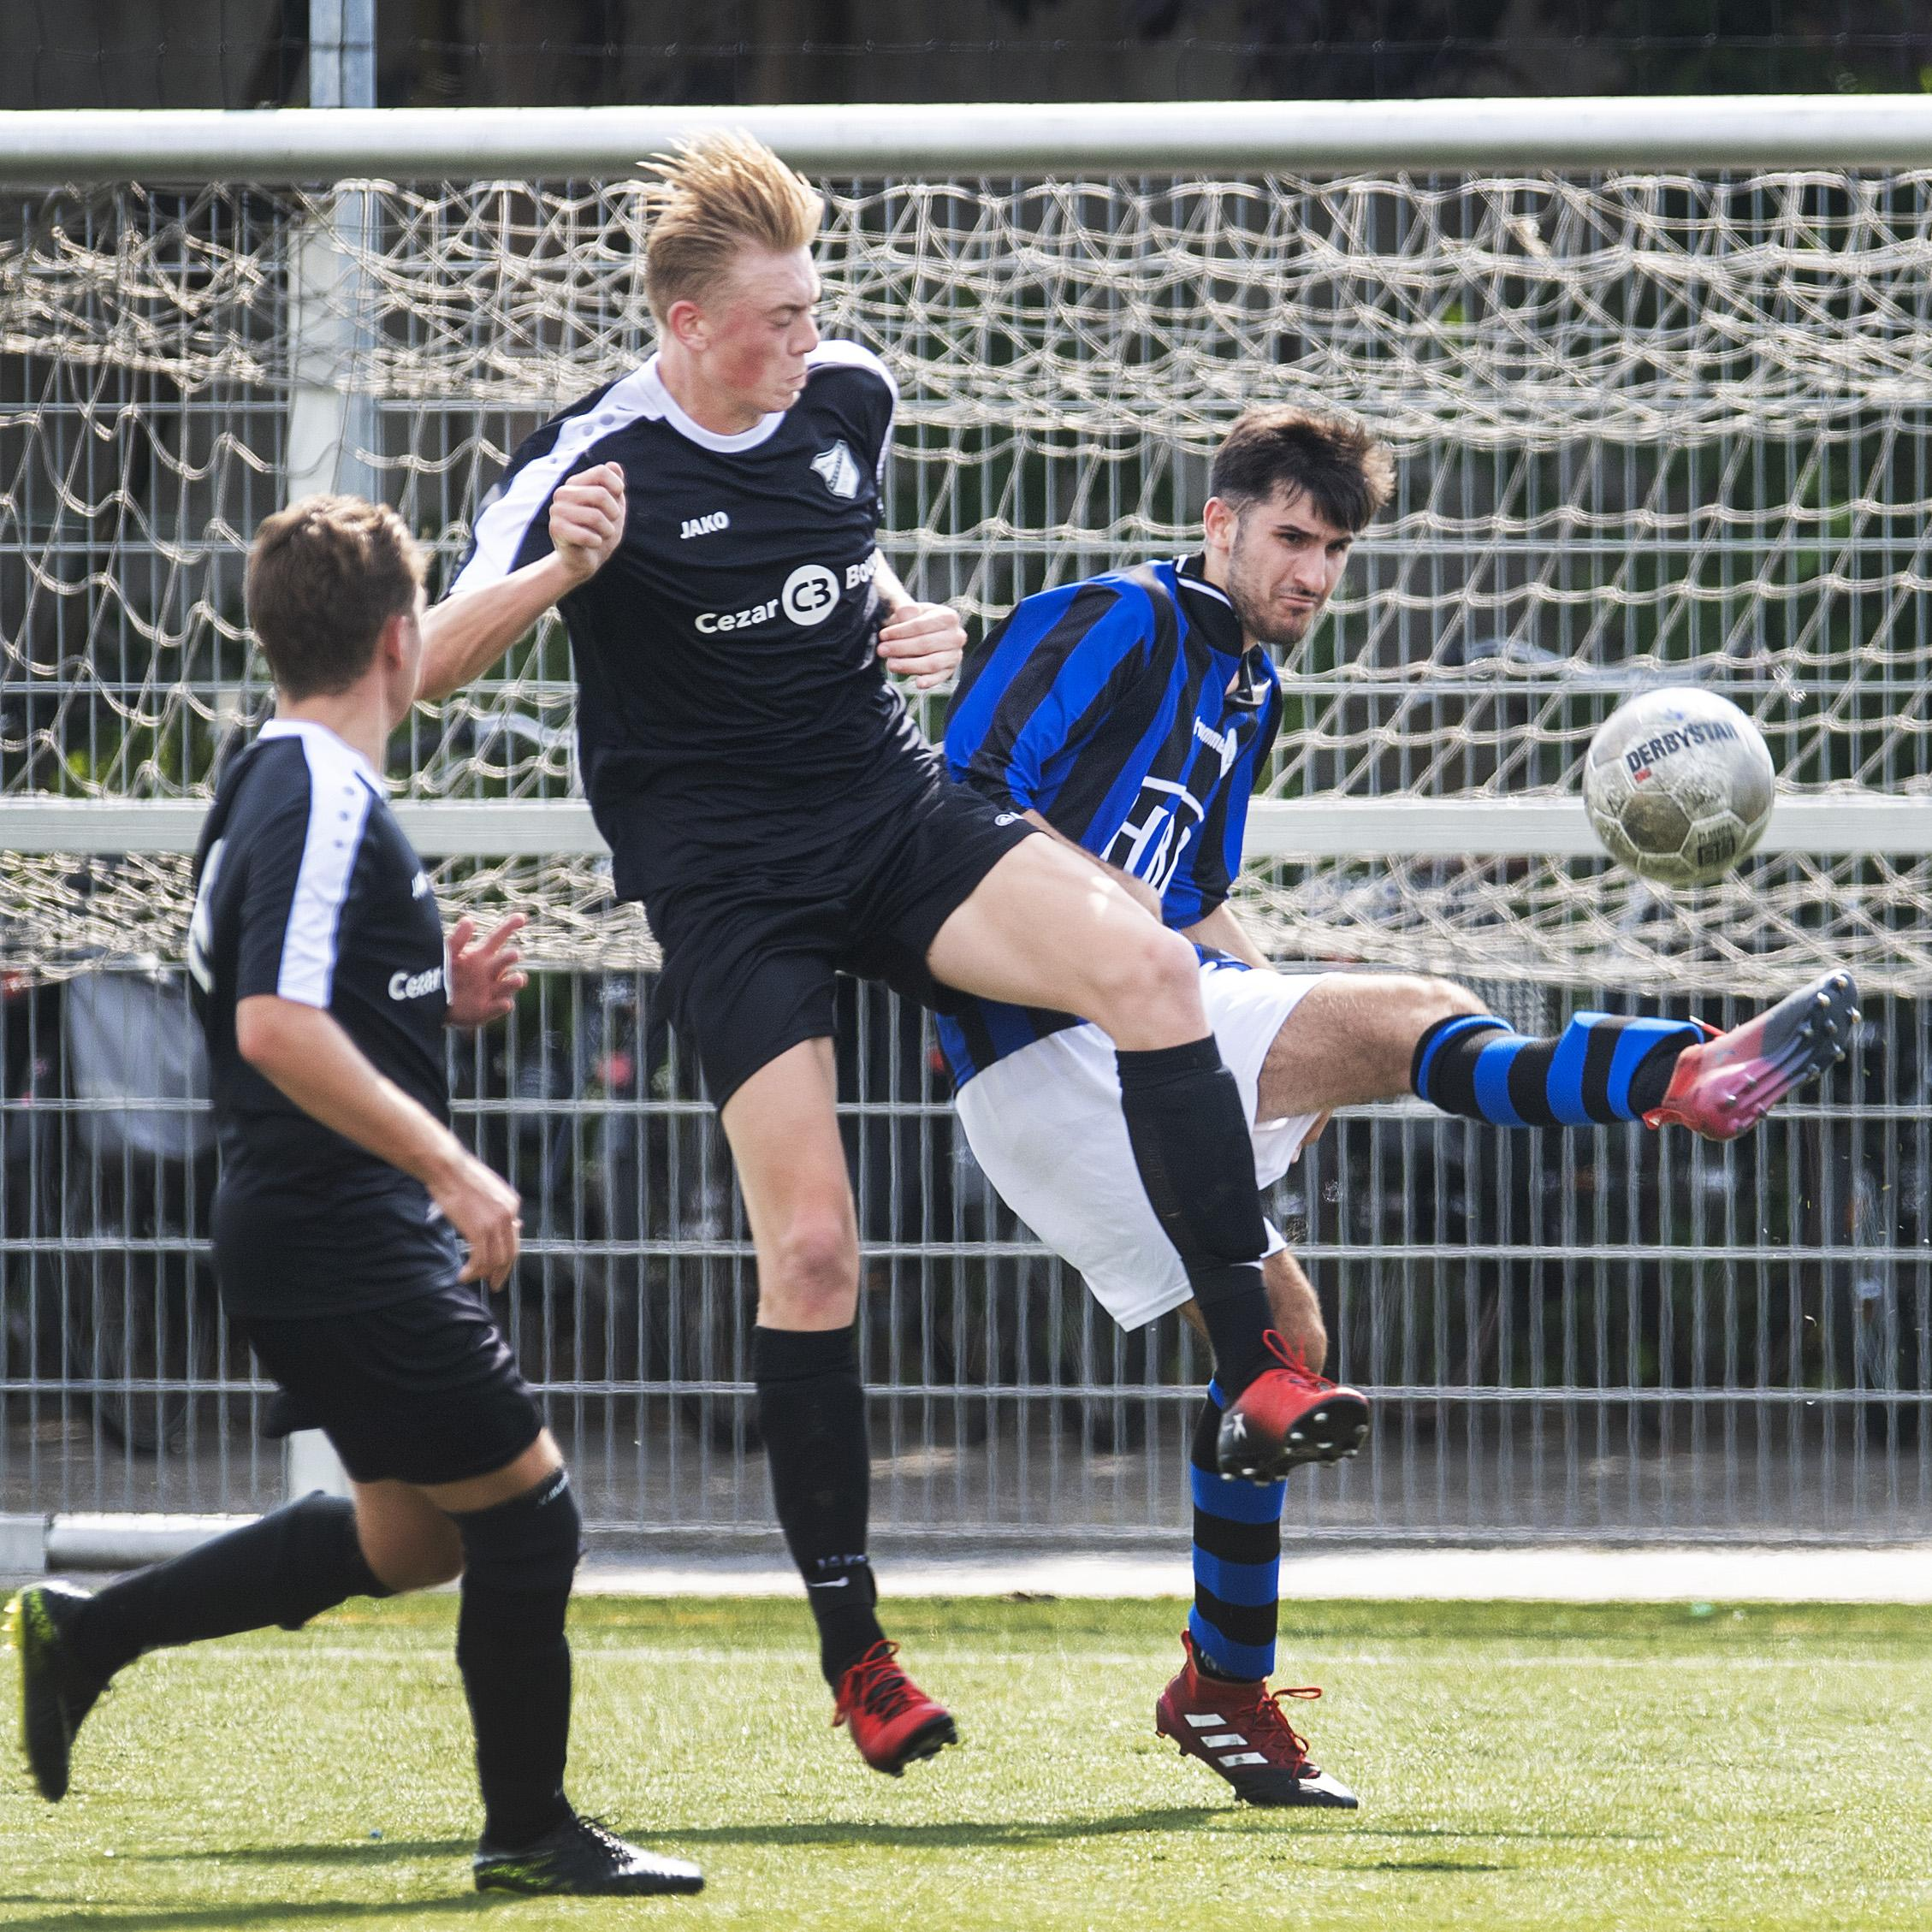 Amateurbekervoetbal van start